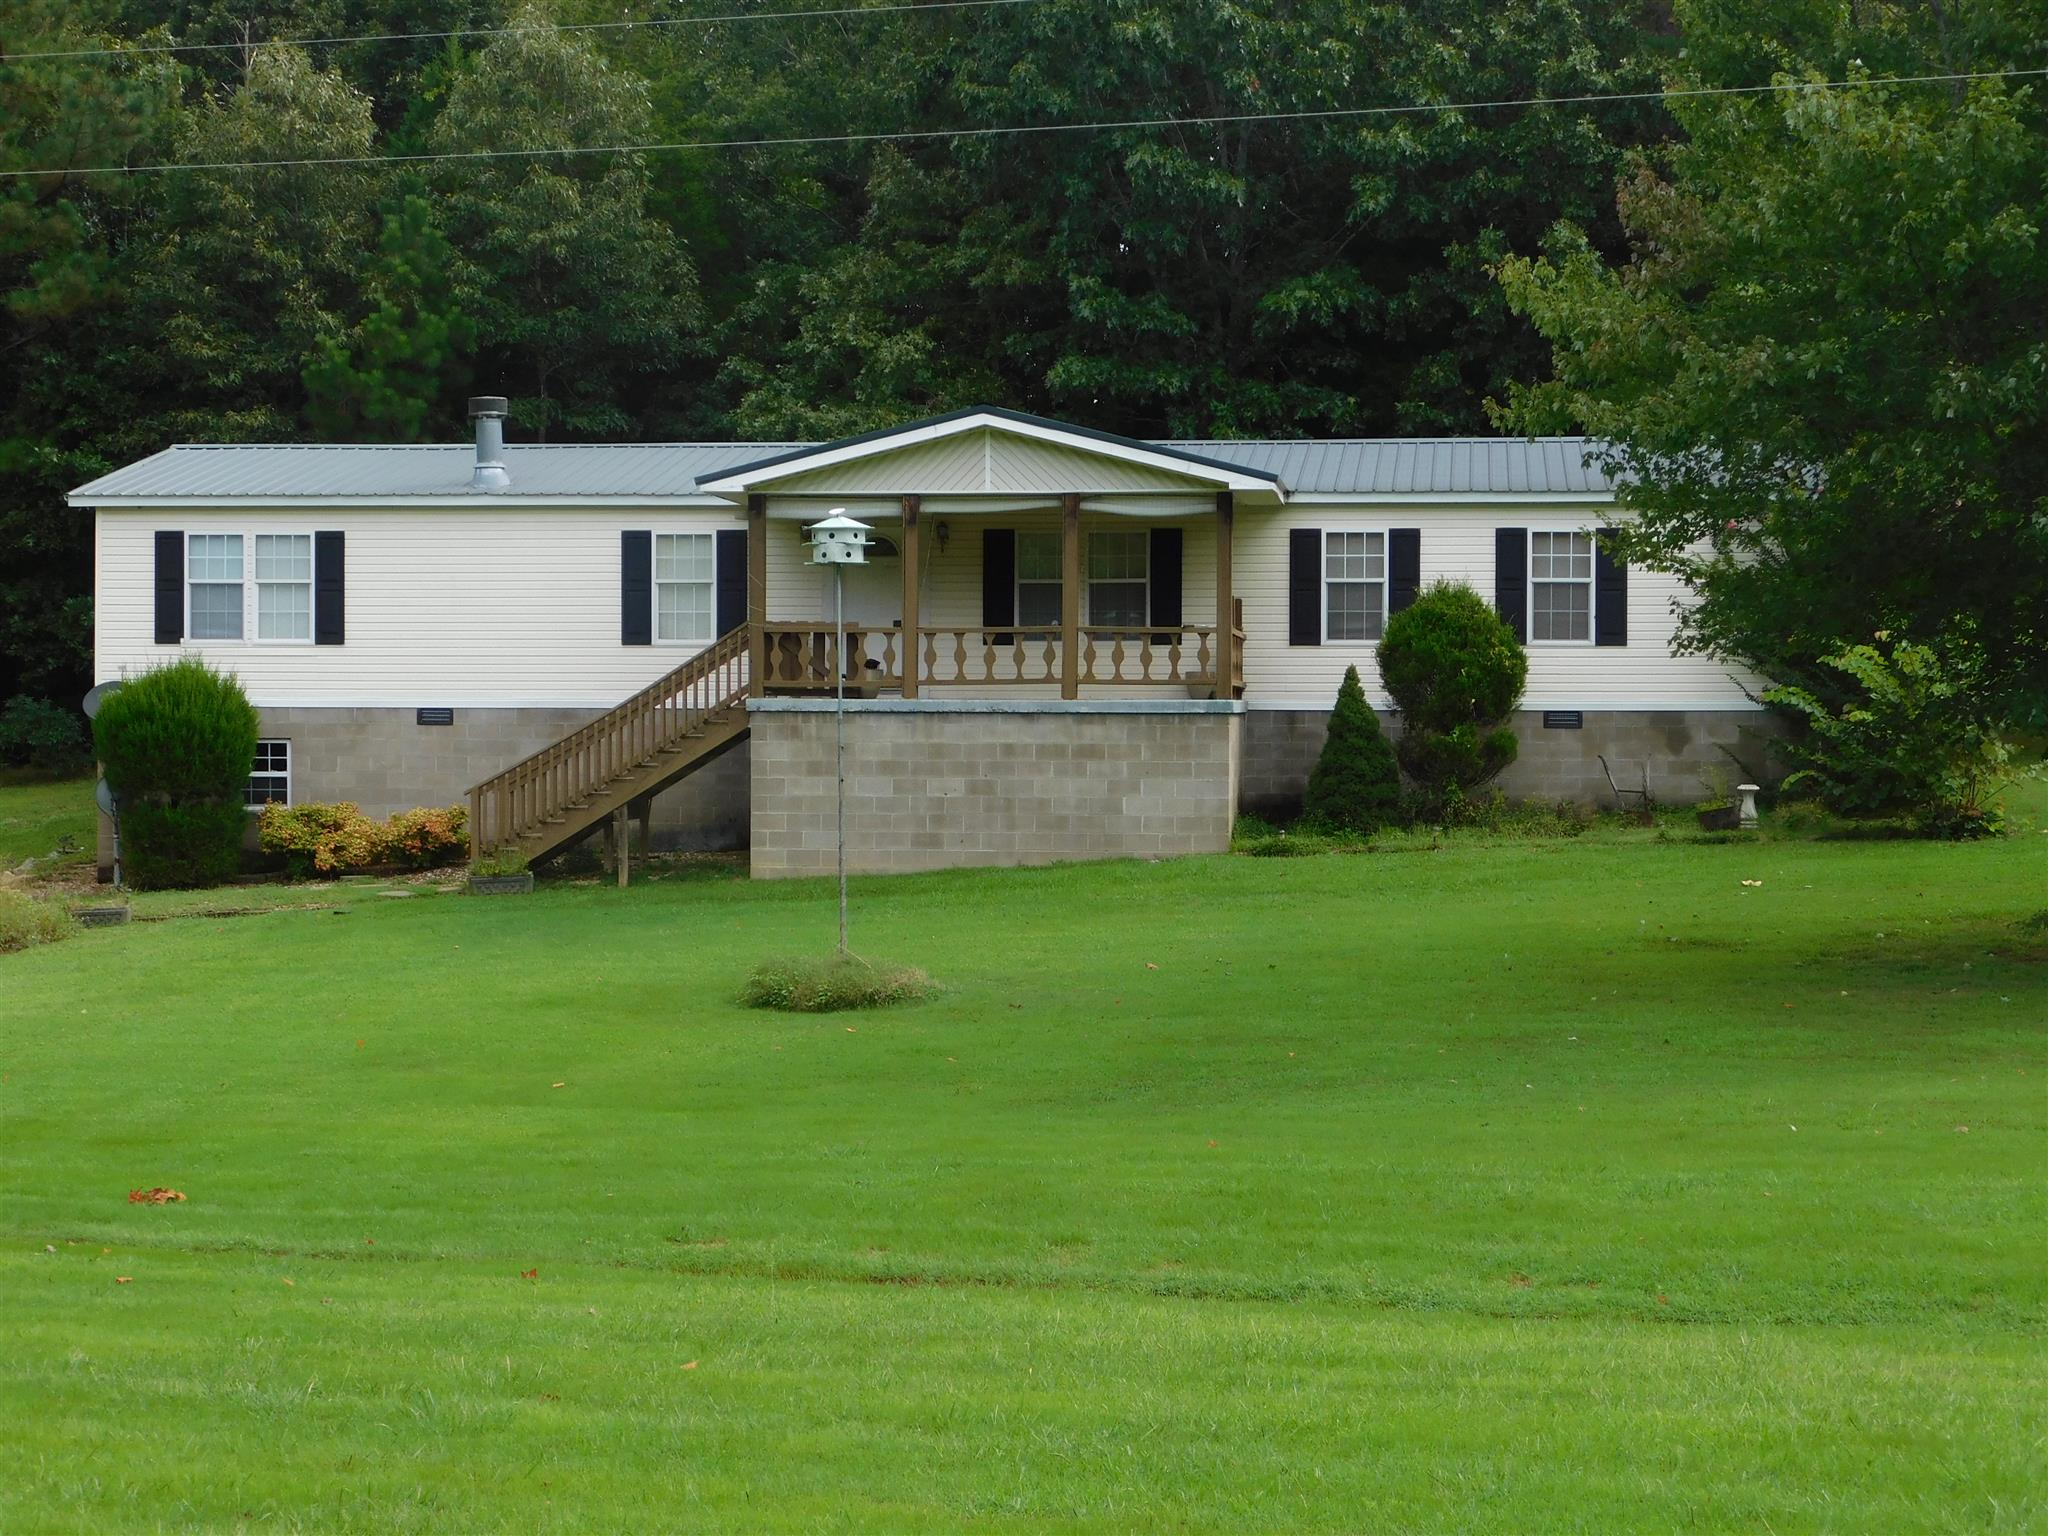 1230 Shiloh Church Rd, Camden, TN 38320 - Camden, TN real estate listing